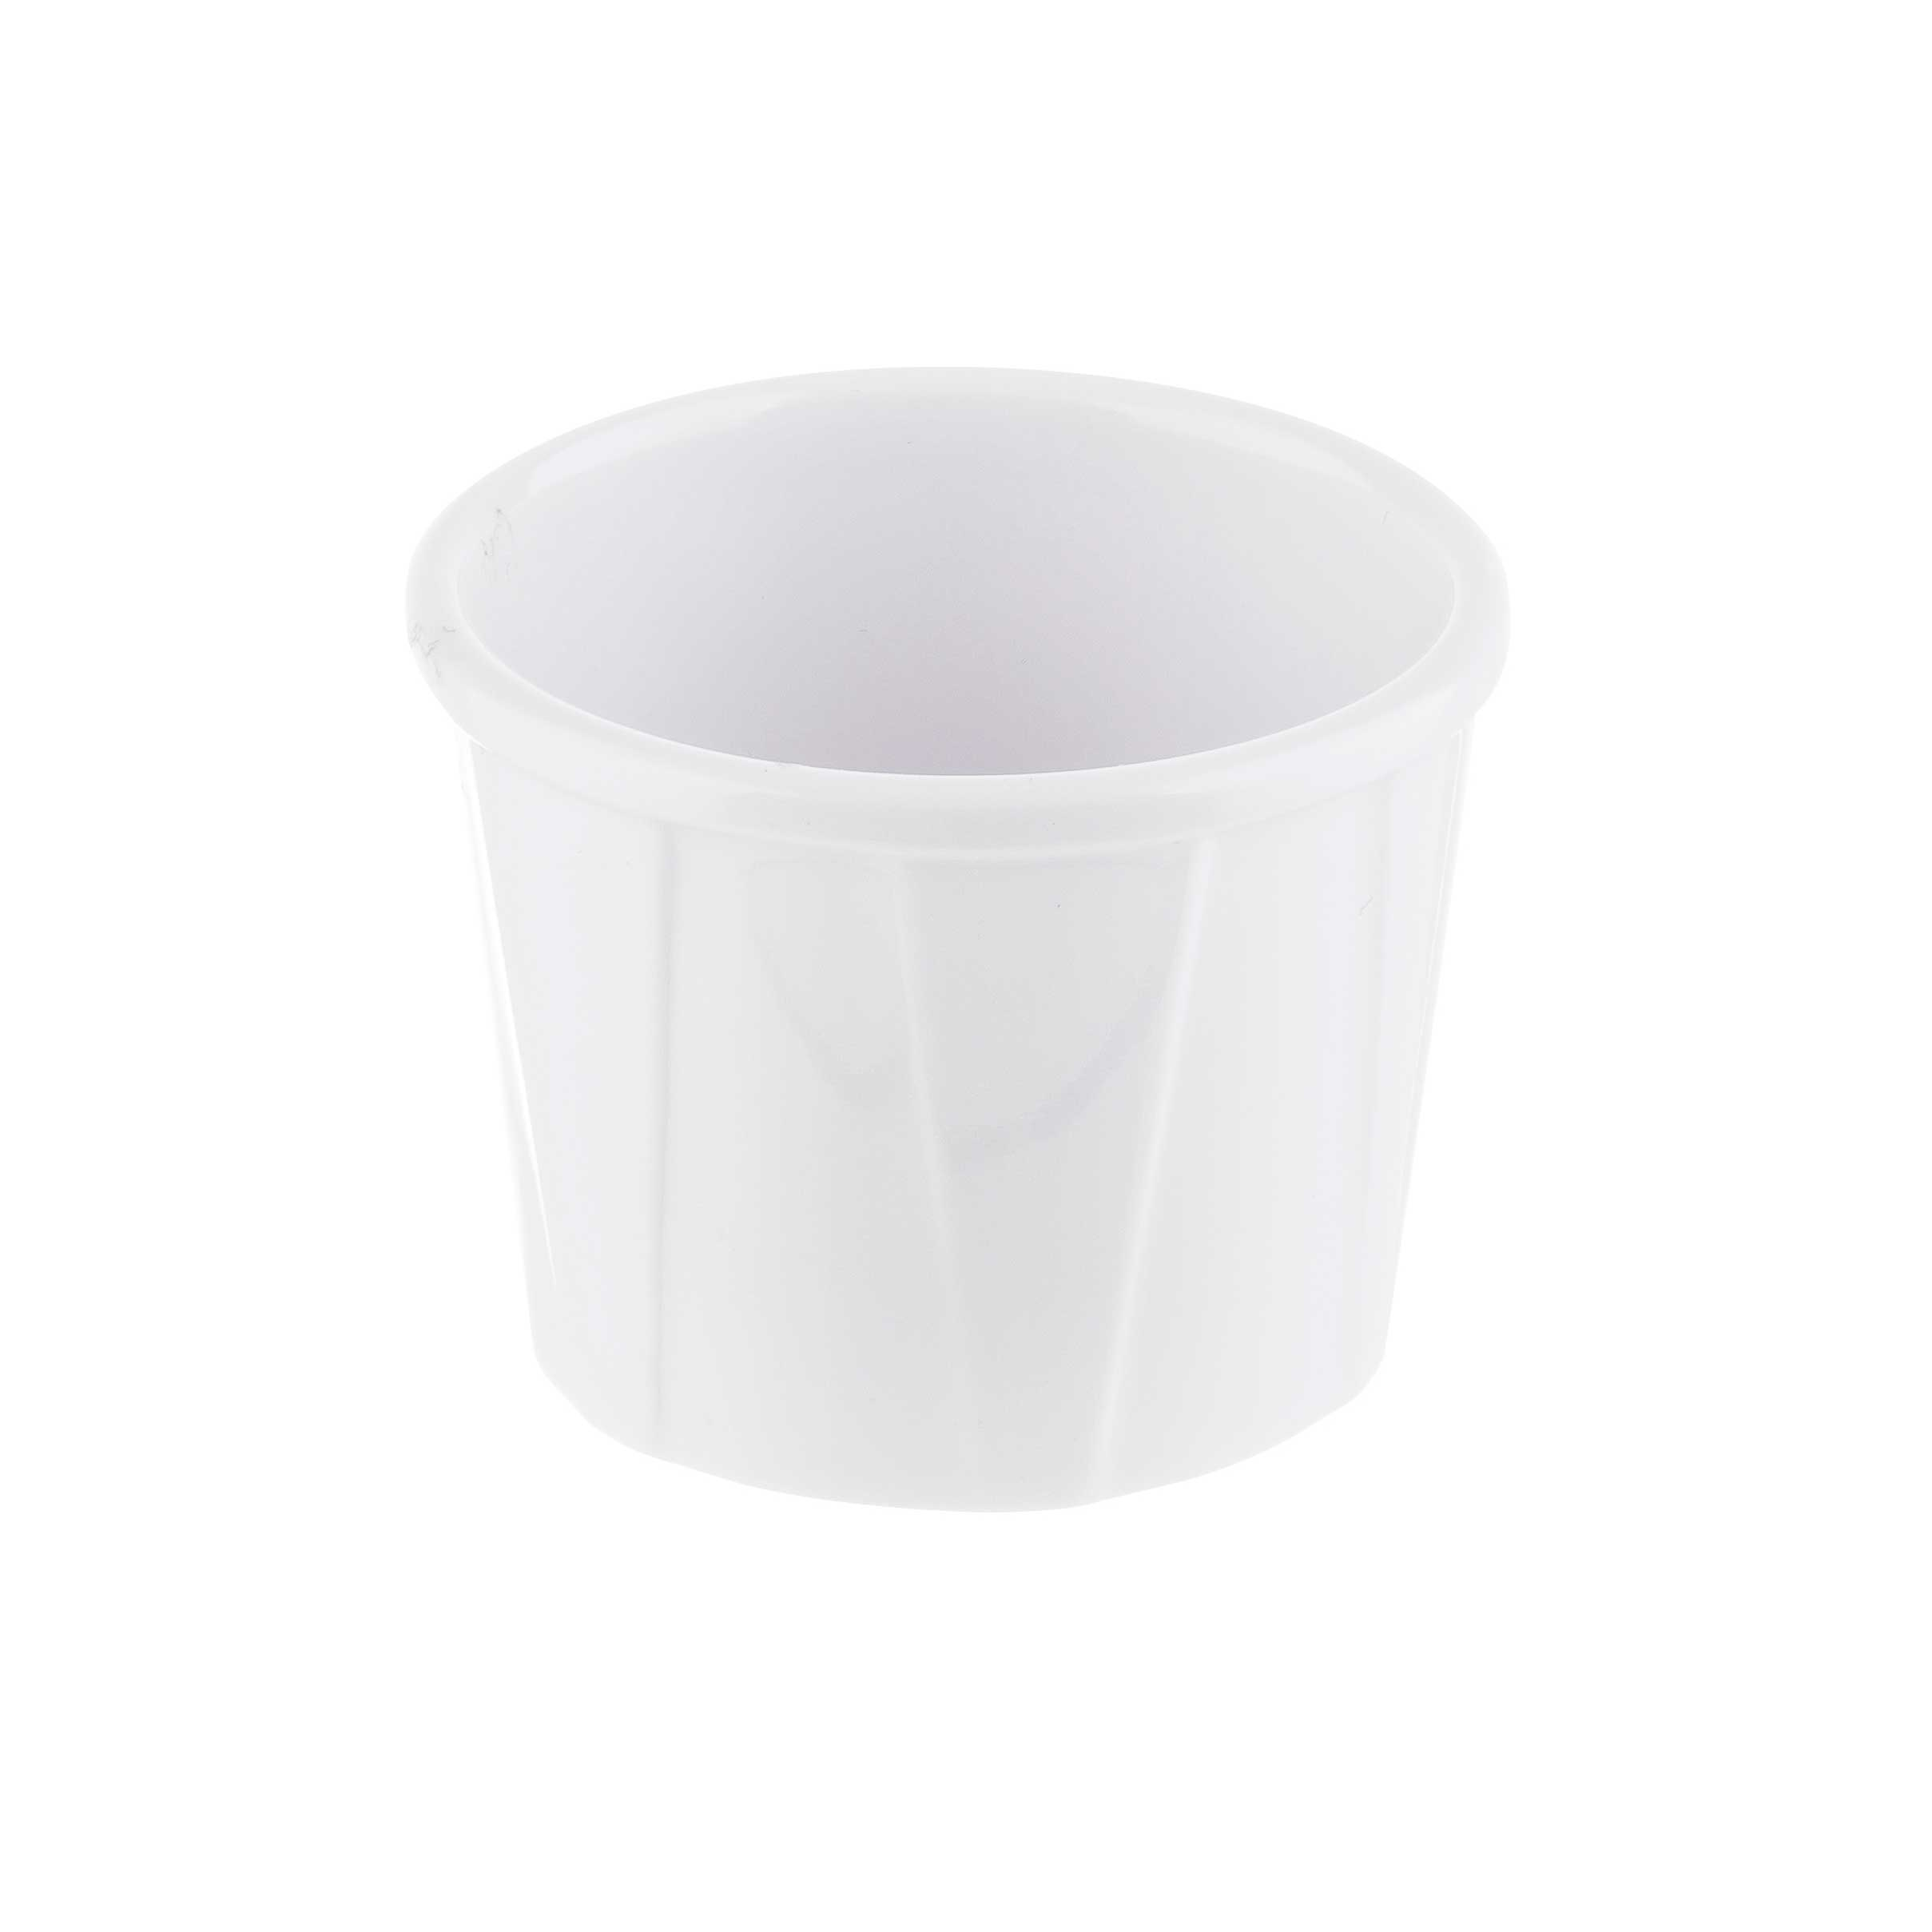 TableCraft Products 240002 souffle bowl / dish